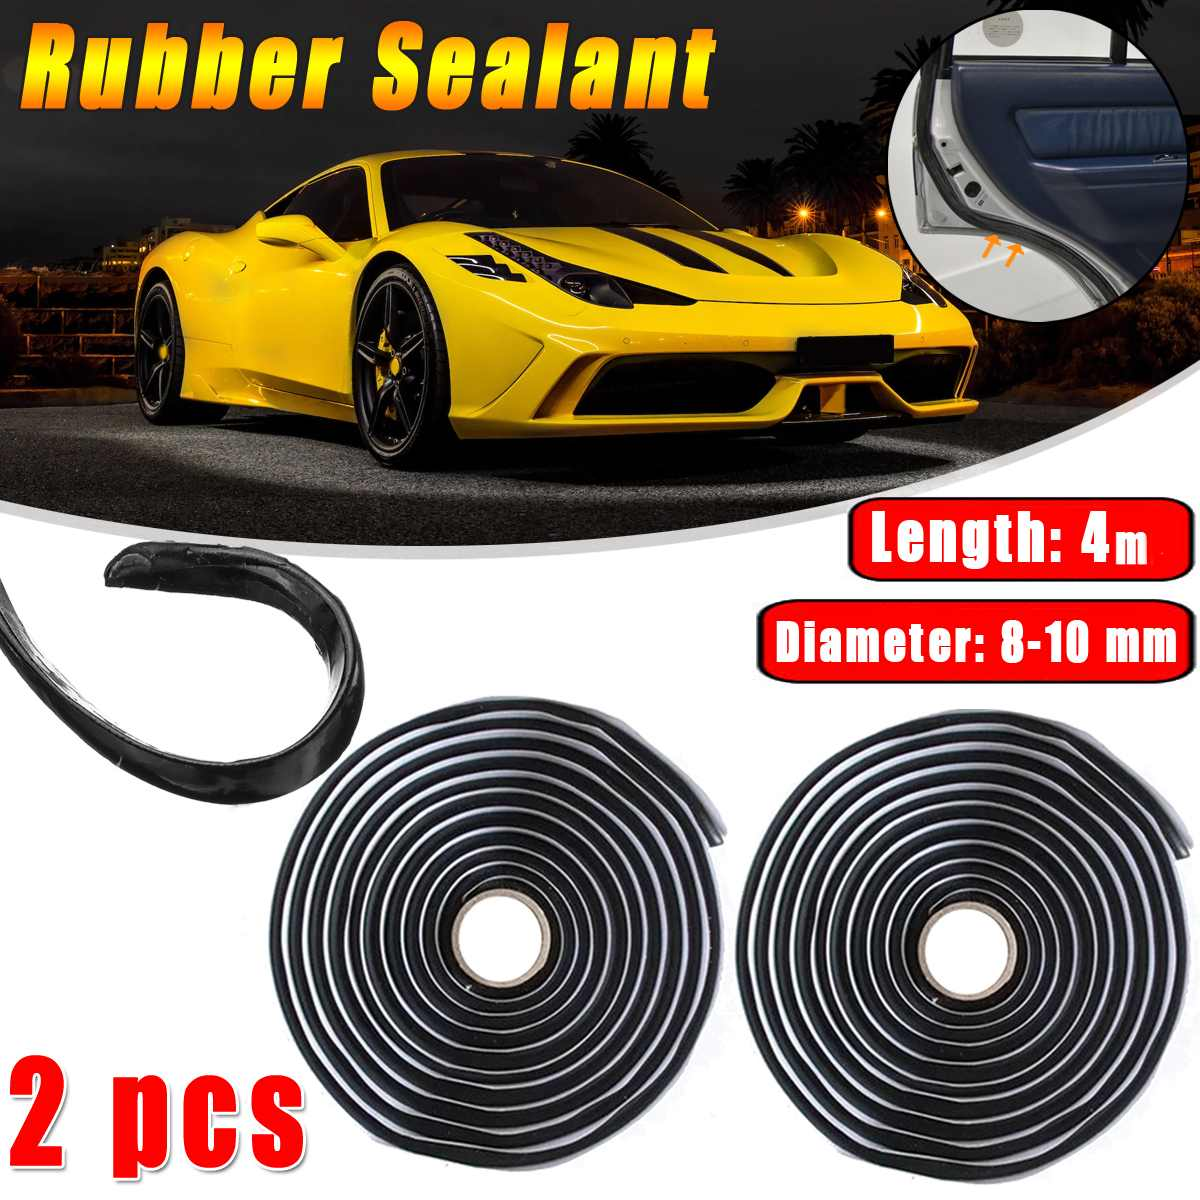 2pcs Car Rubber Sealant 4 Meters Butyl Glue Headlight Windshield Retrofit Reseal Hid Headlamps Taillight Shield Glue Tapes Pakistan